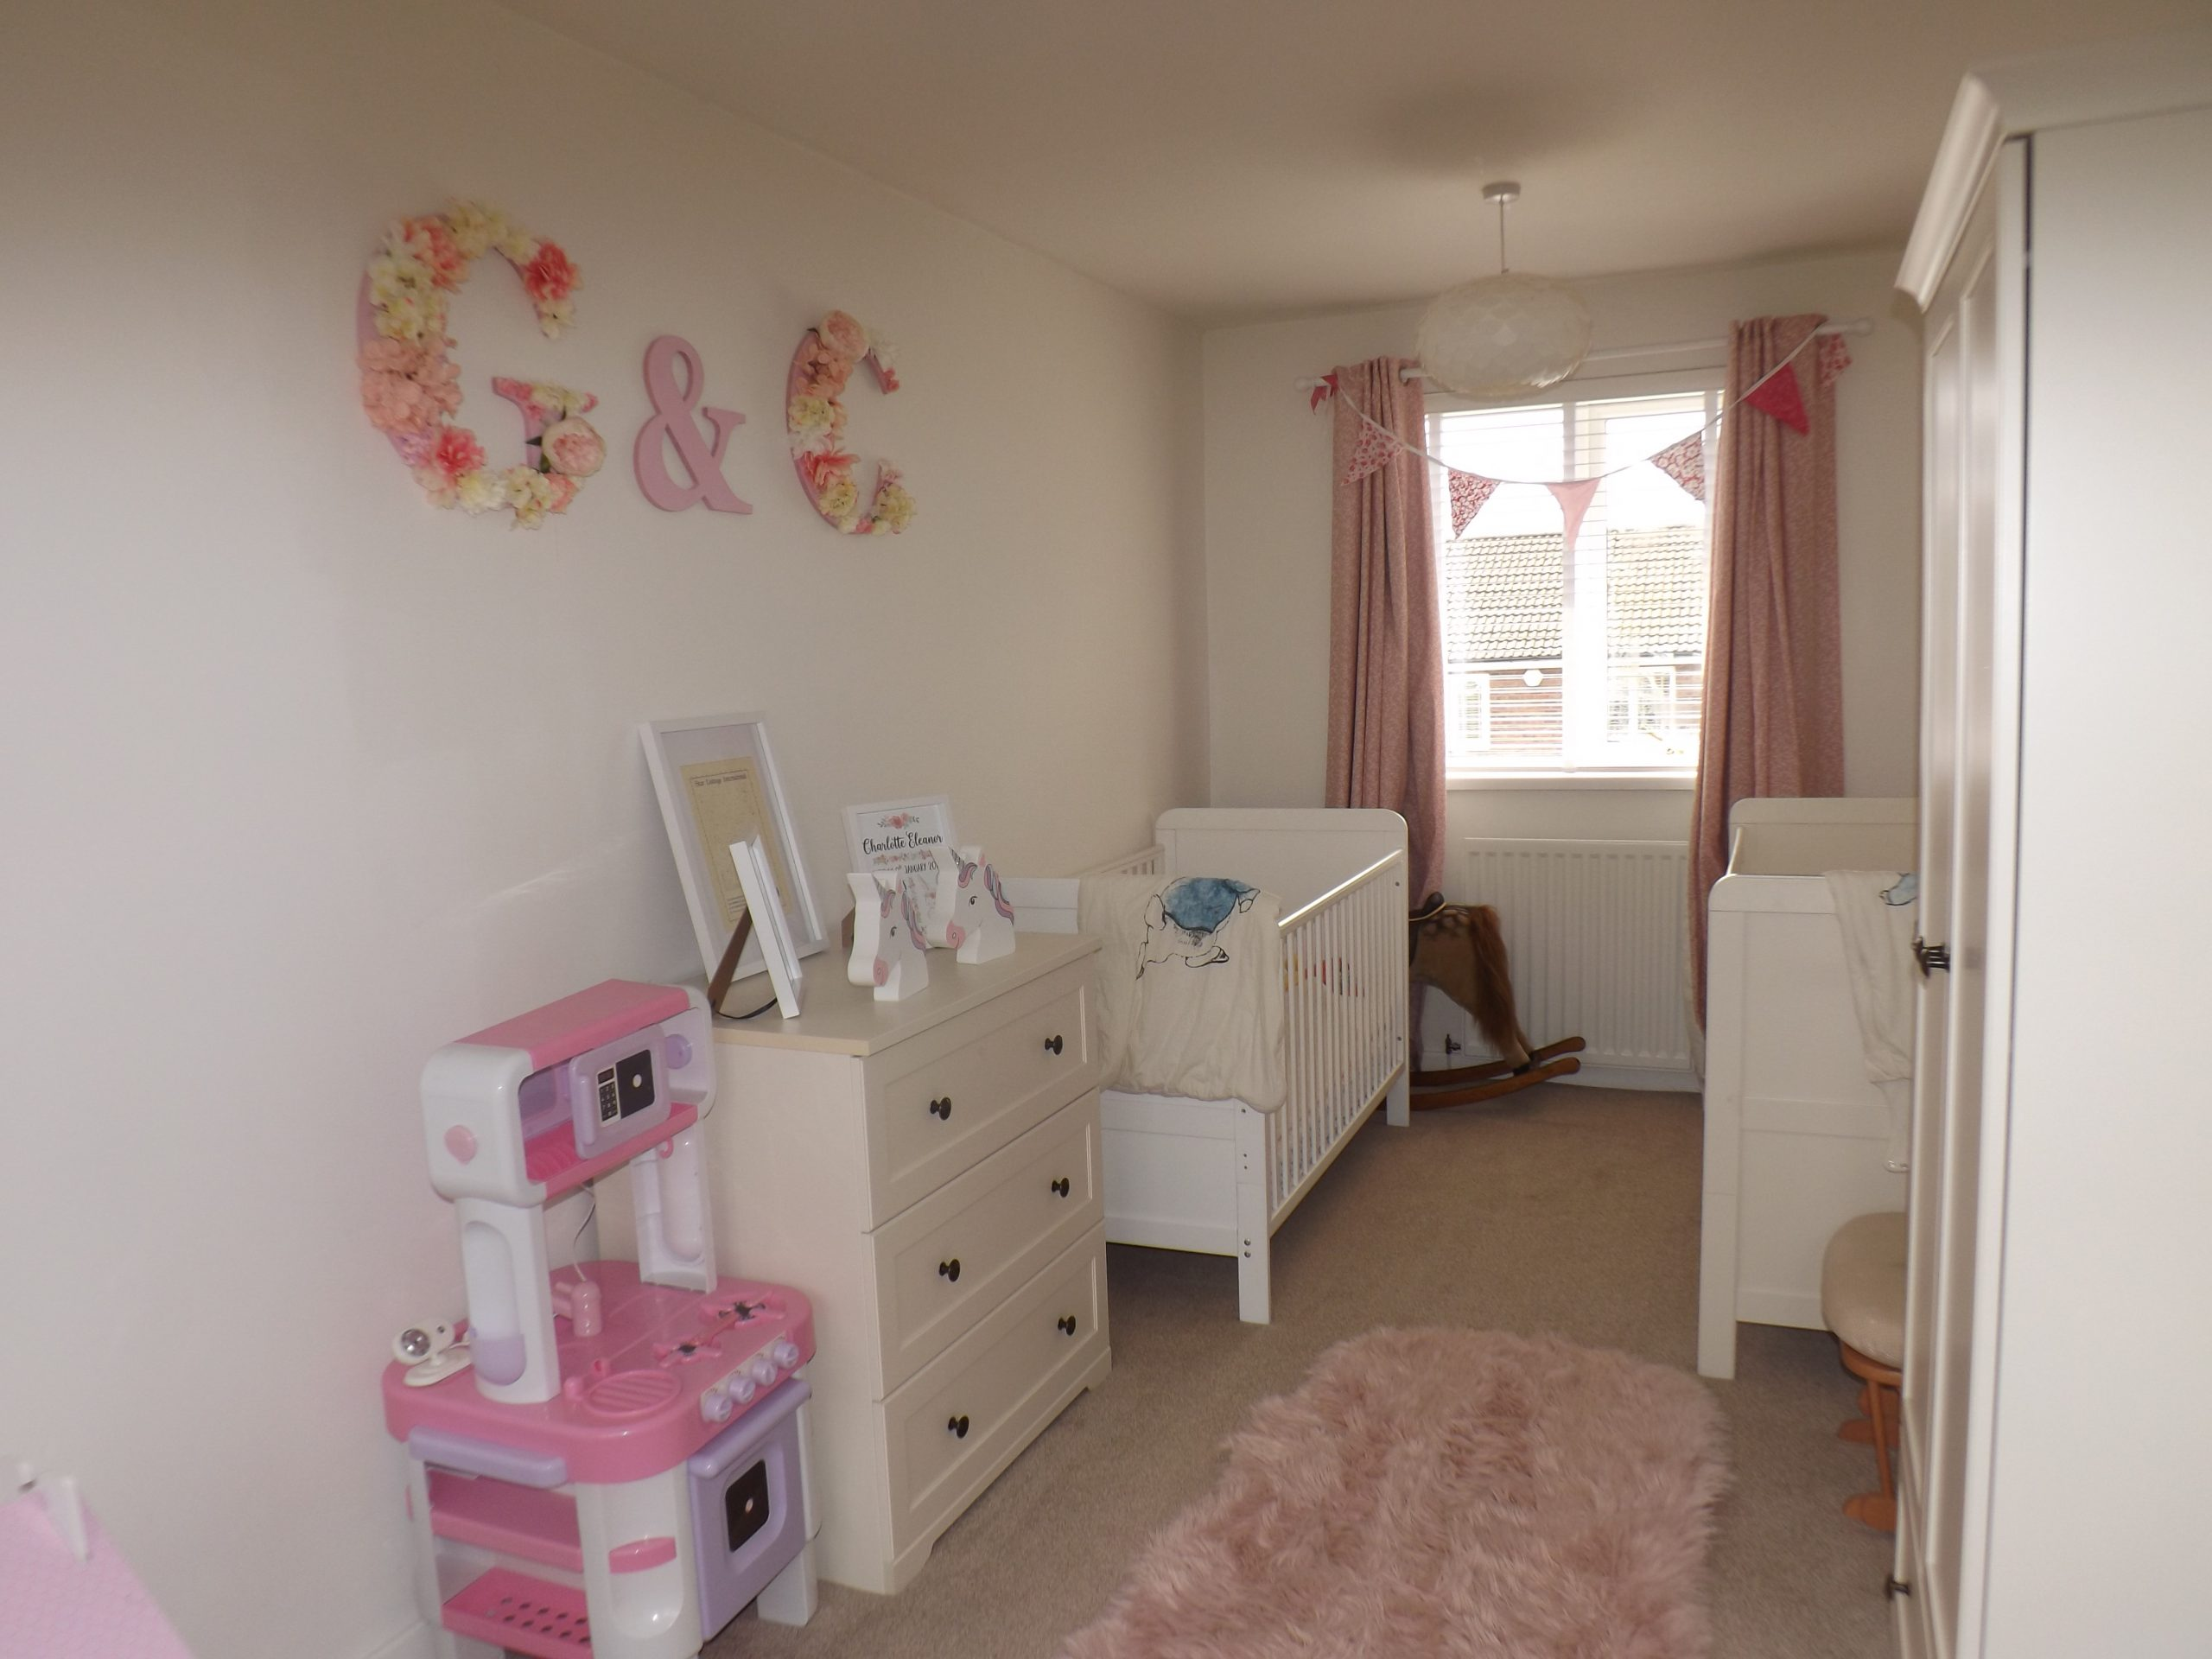 Durham house | baby room at Friarside, Witton Gilbert